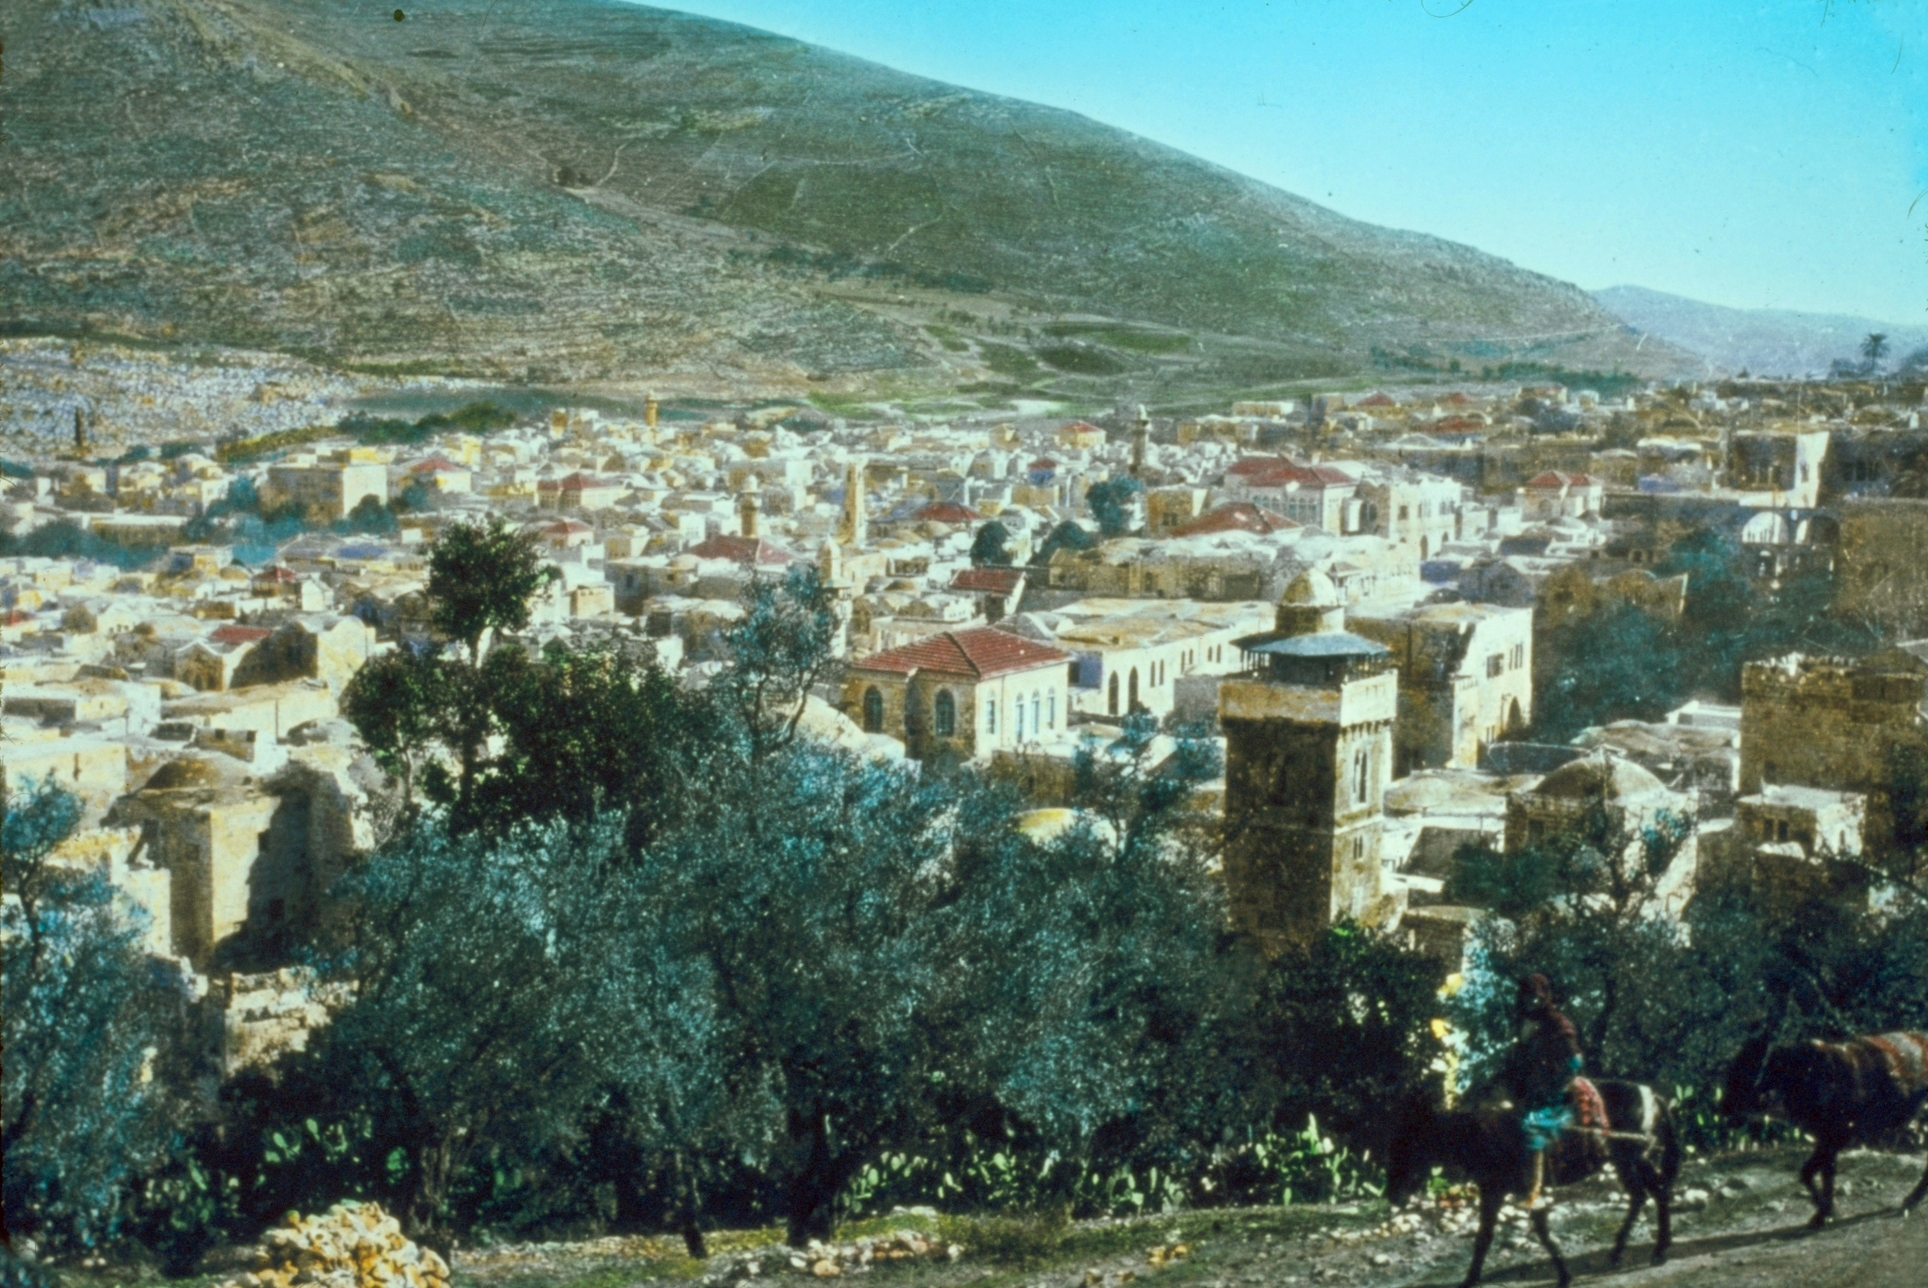 Nablus - نابلس : NABLUS - Late 19th, early 20th c. 28 - ***** BEAUTY IN STONE *****